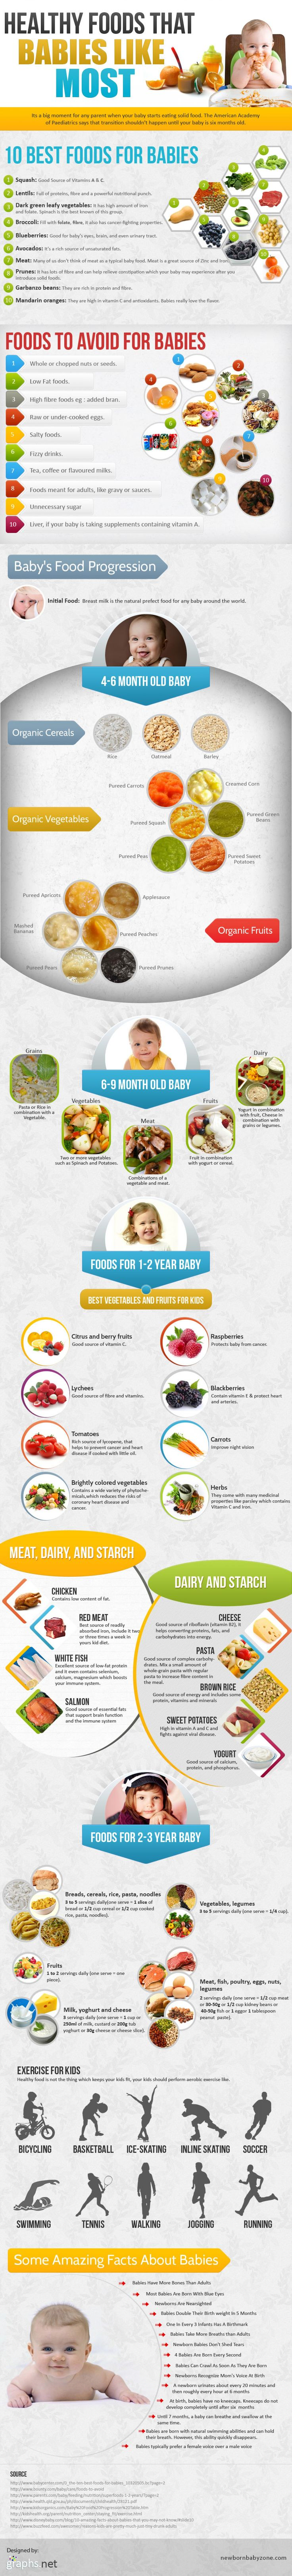 One of the biggest moments in the life of parents is the moment when baby starts eating solid food. Most doctors say that a baby must not start eating solid food until he/she turns about 6 months old. There are certain food items which a baby must be given in the initial months of eating so as to ensure that he/she consumes the right amount of nutrients.